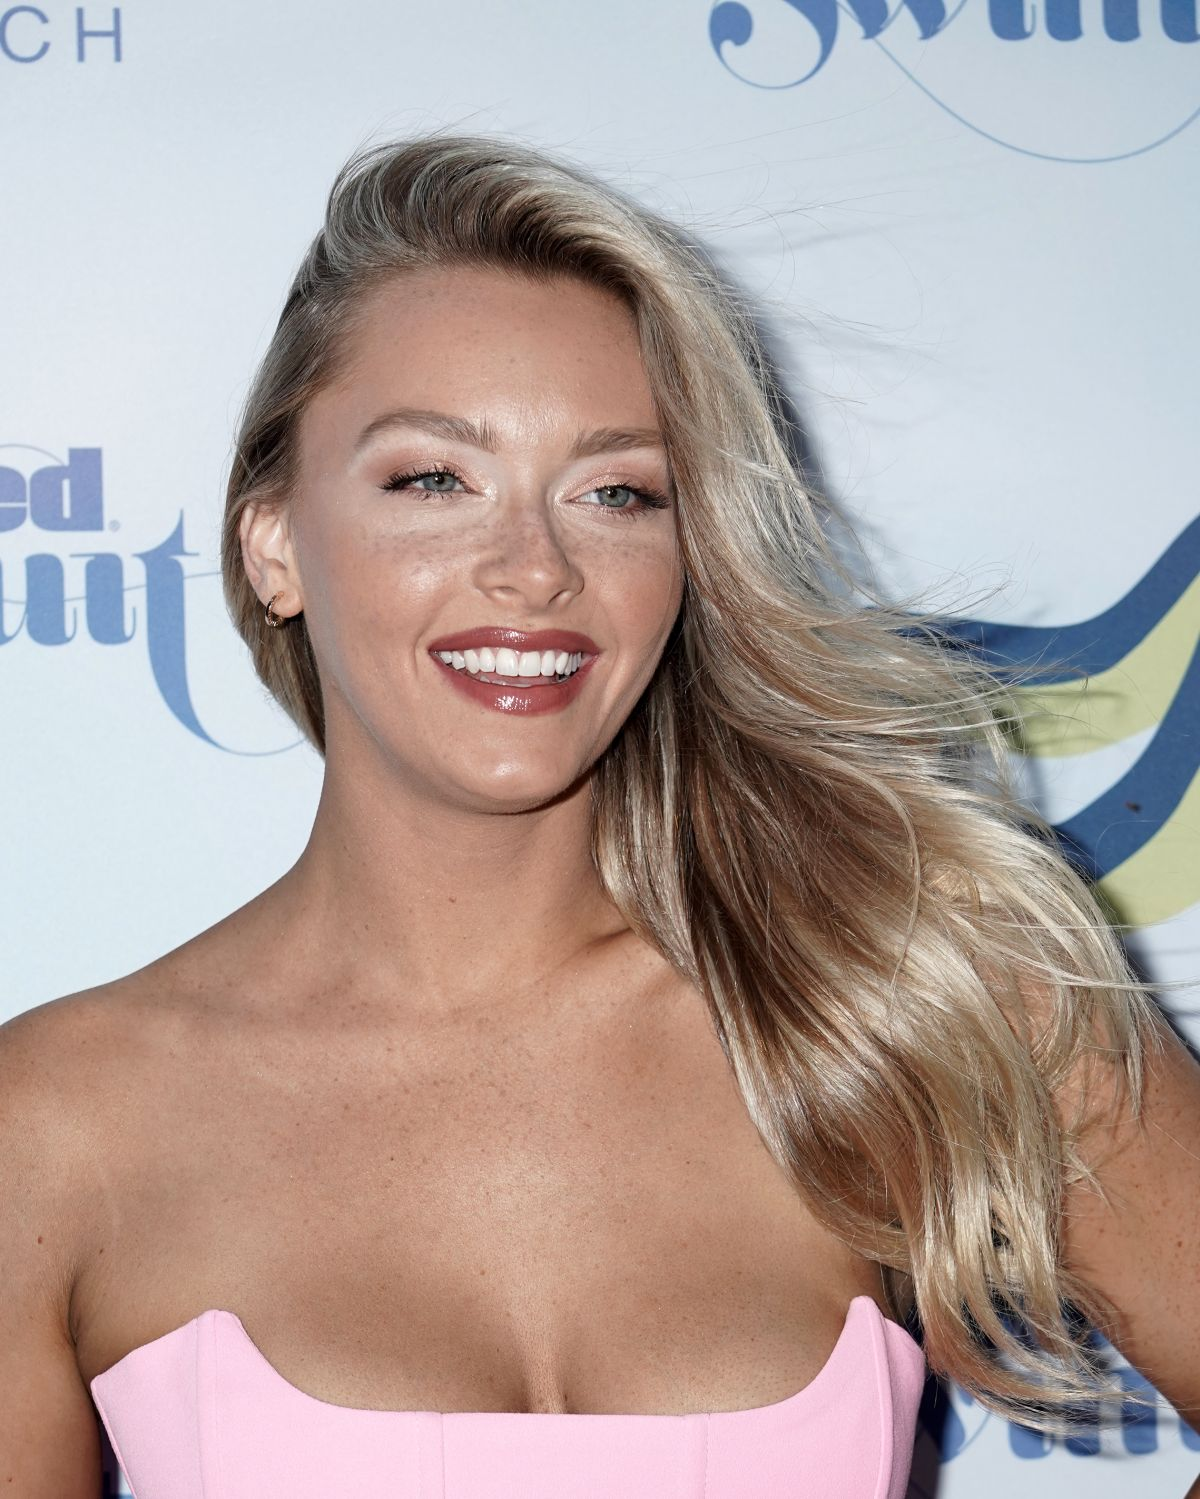 Camille Kostek Swkmsuit: CAMILLE KOSTEK At 2019 Sports Illustrated Swimsuit Show At